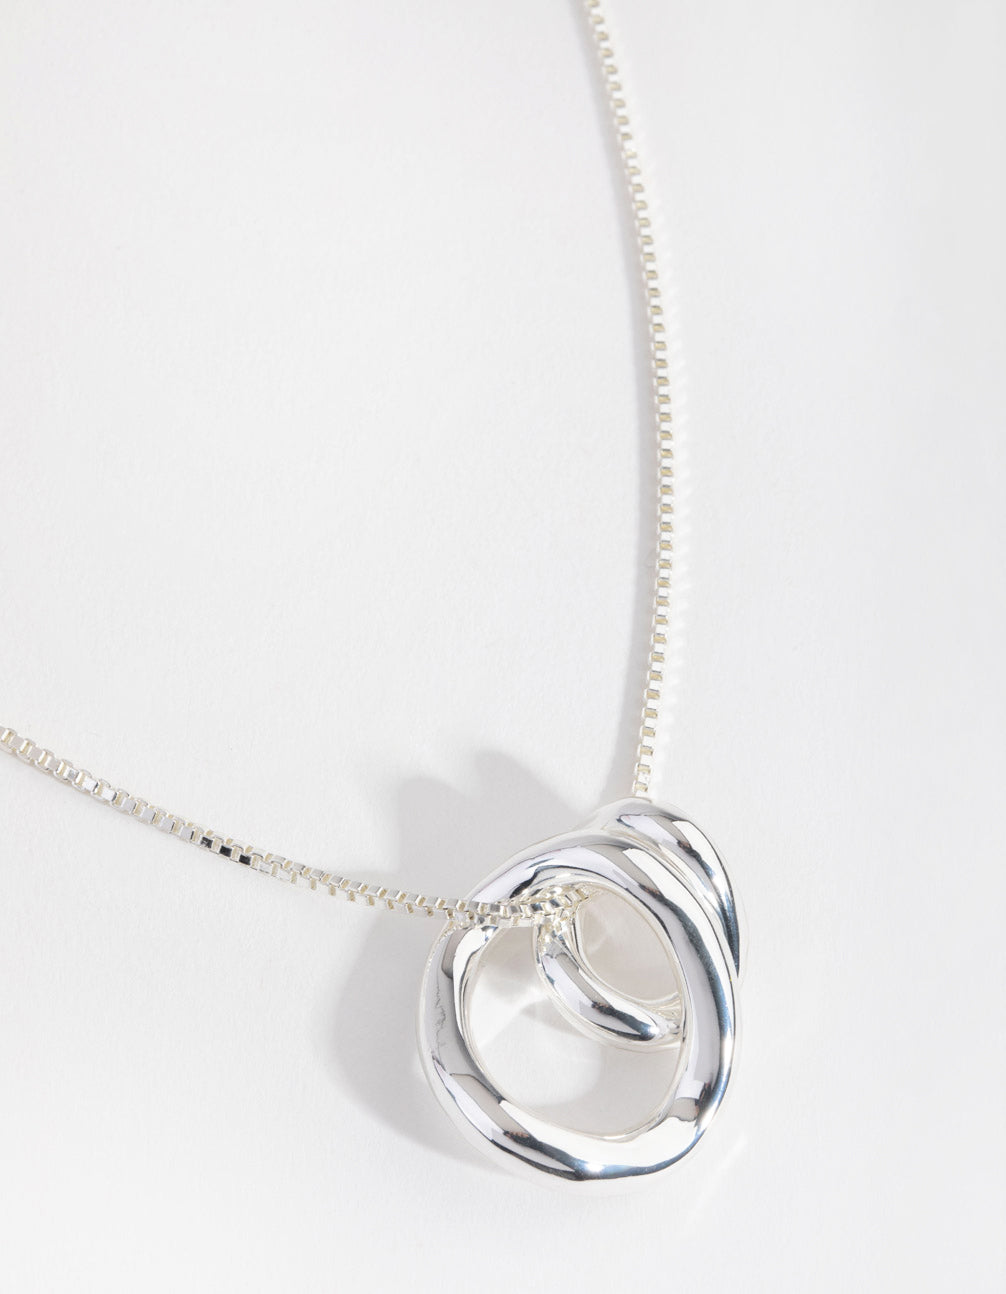 Real Silver Plated Swirl Pendant Necklace